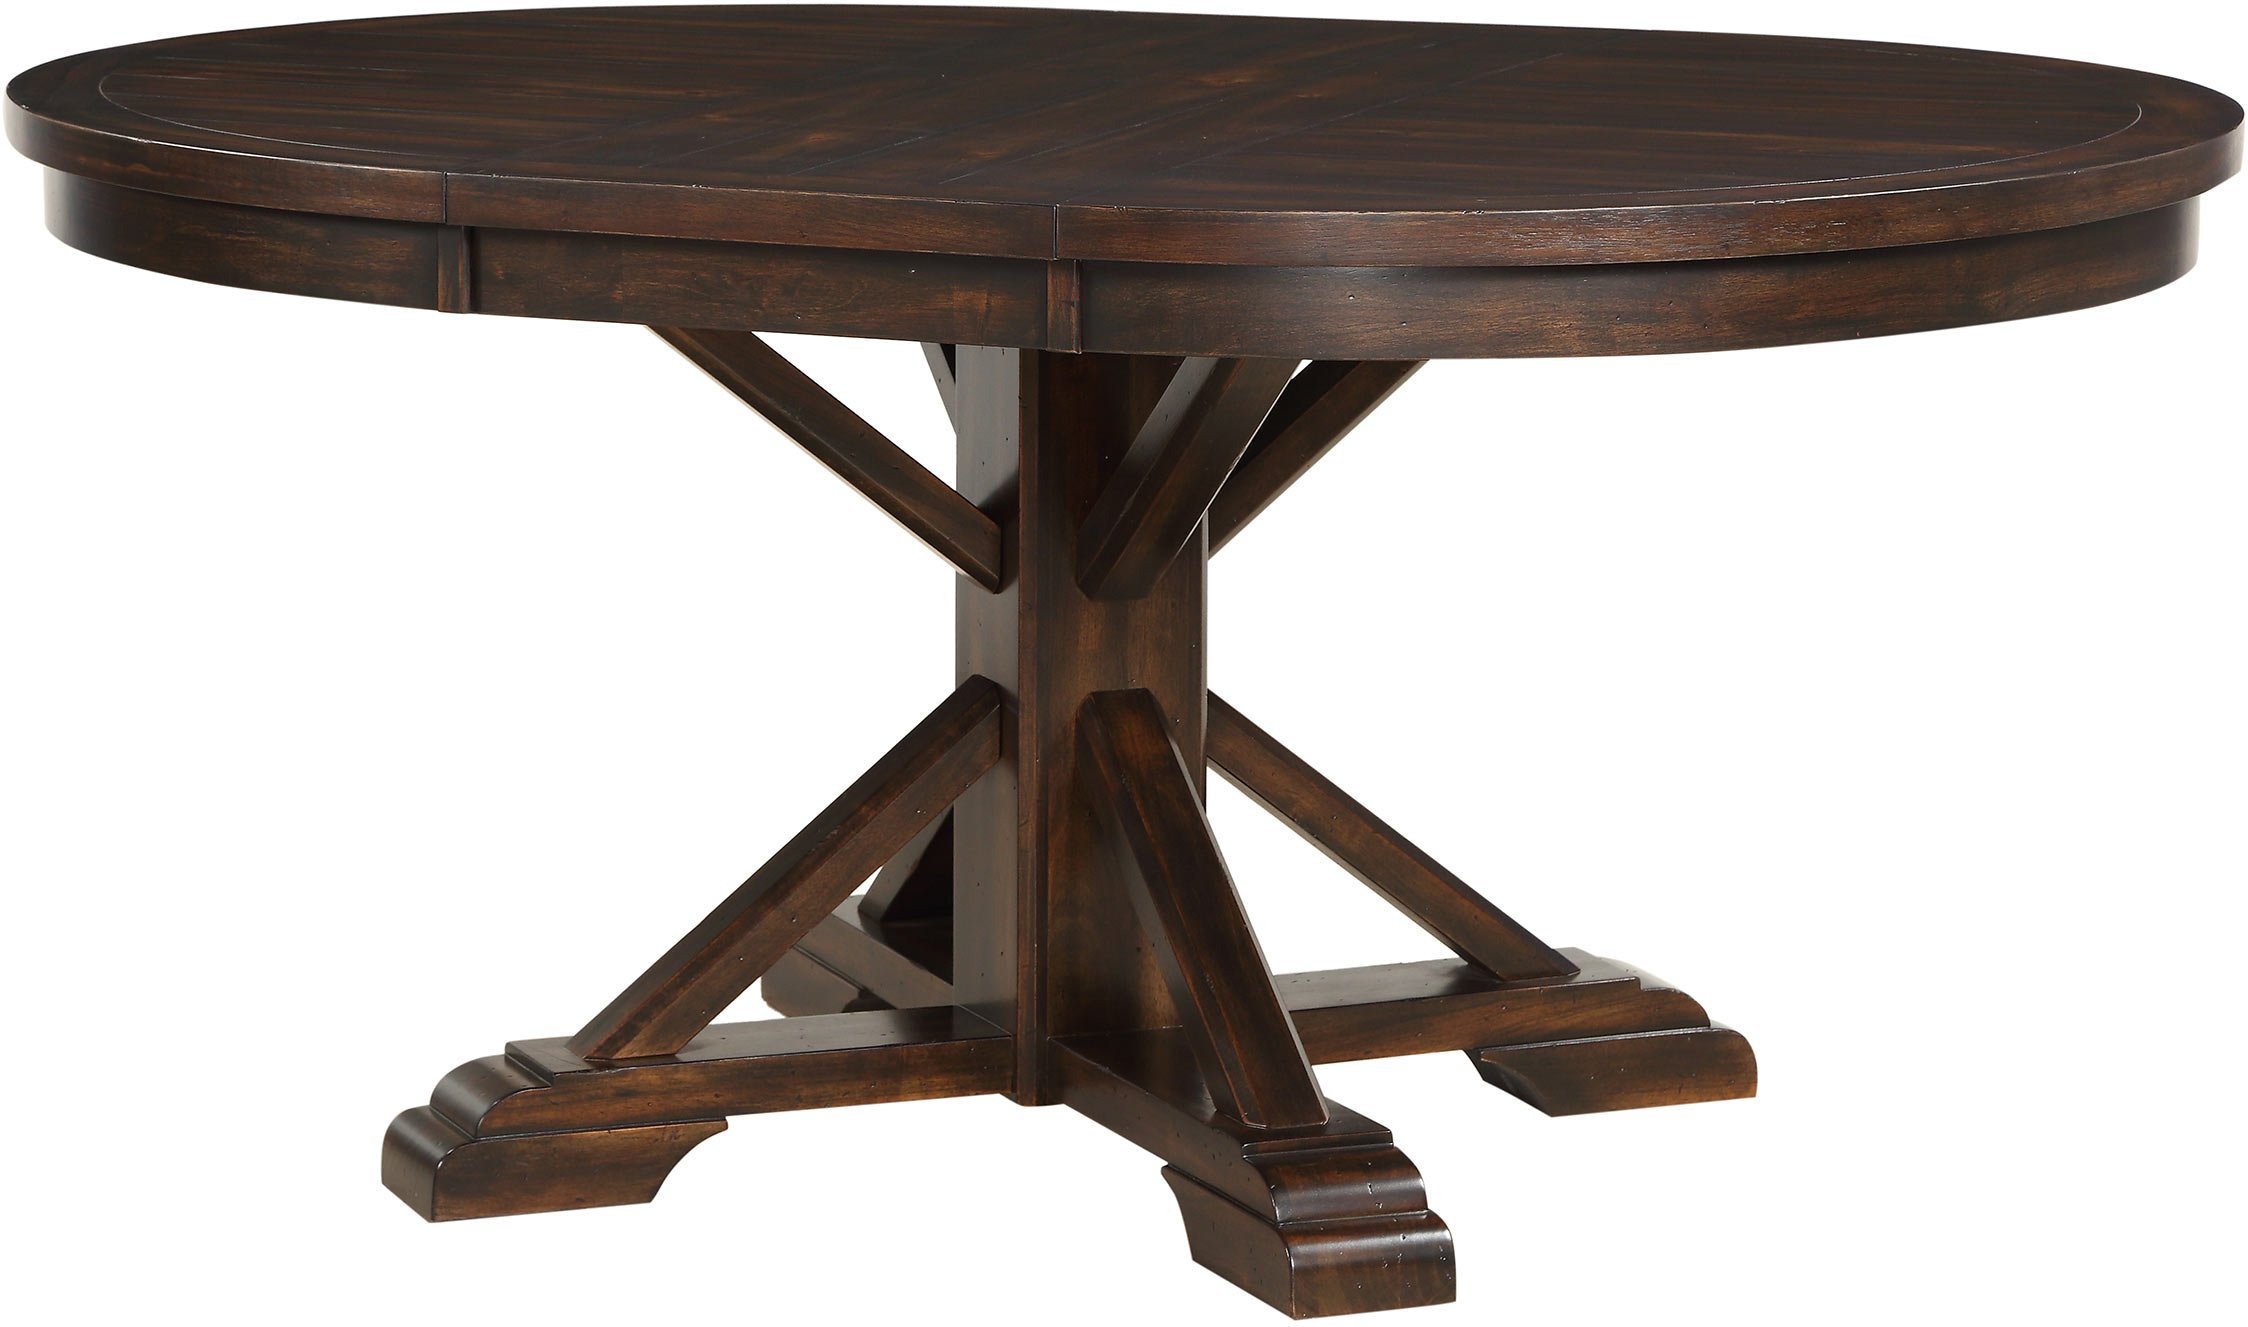 Dining Table Montreal Gallery Dining Table Ideas : Tobacco Brown Dining Table Montreal rcwilley image1 from sorahana.info size 2000 x 1631 jpeg 737kB